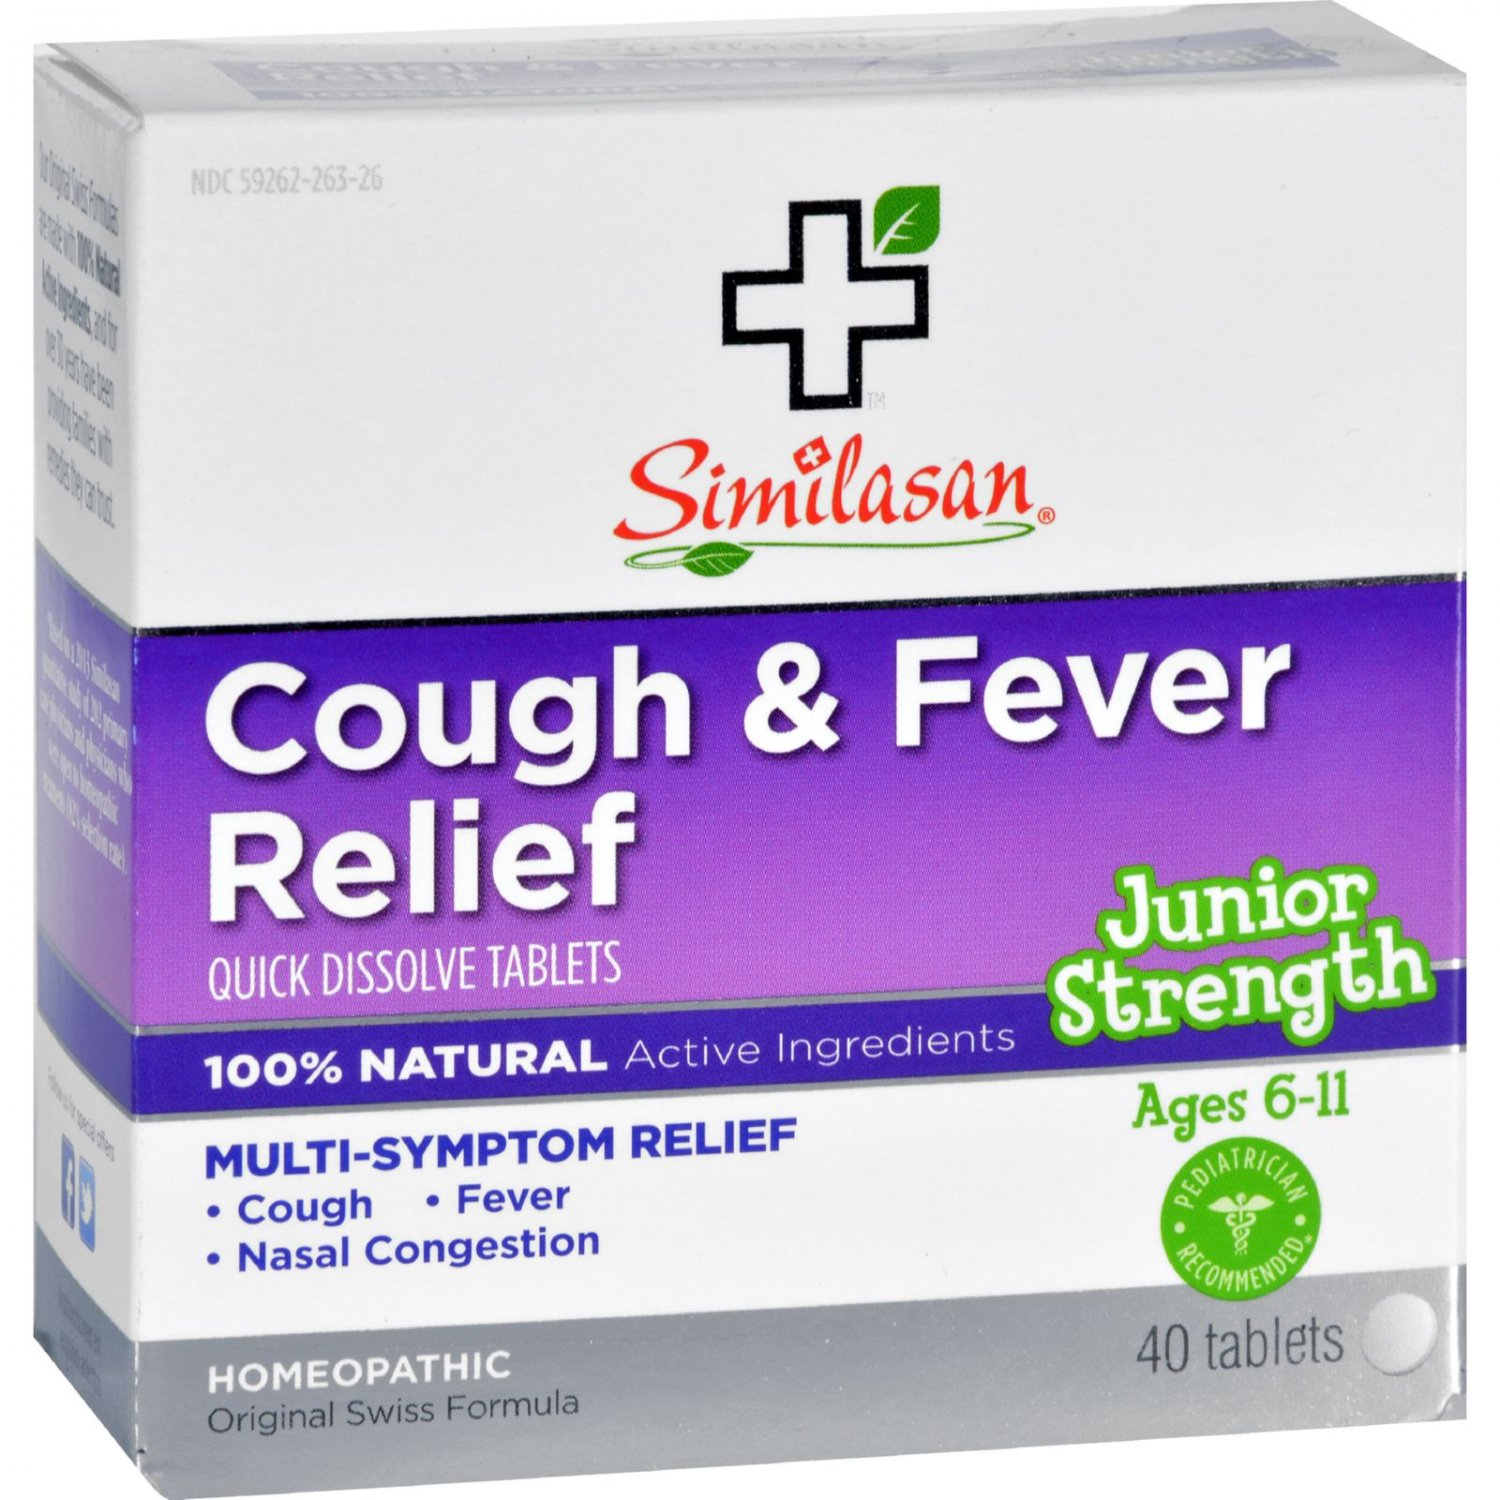 Similasan Cough and Fever Relief - Junior Strength - Ages 6 to 11 - 40 Tabs